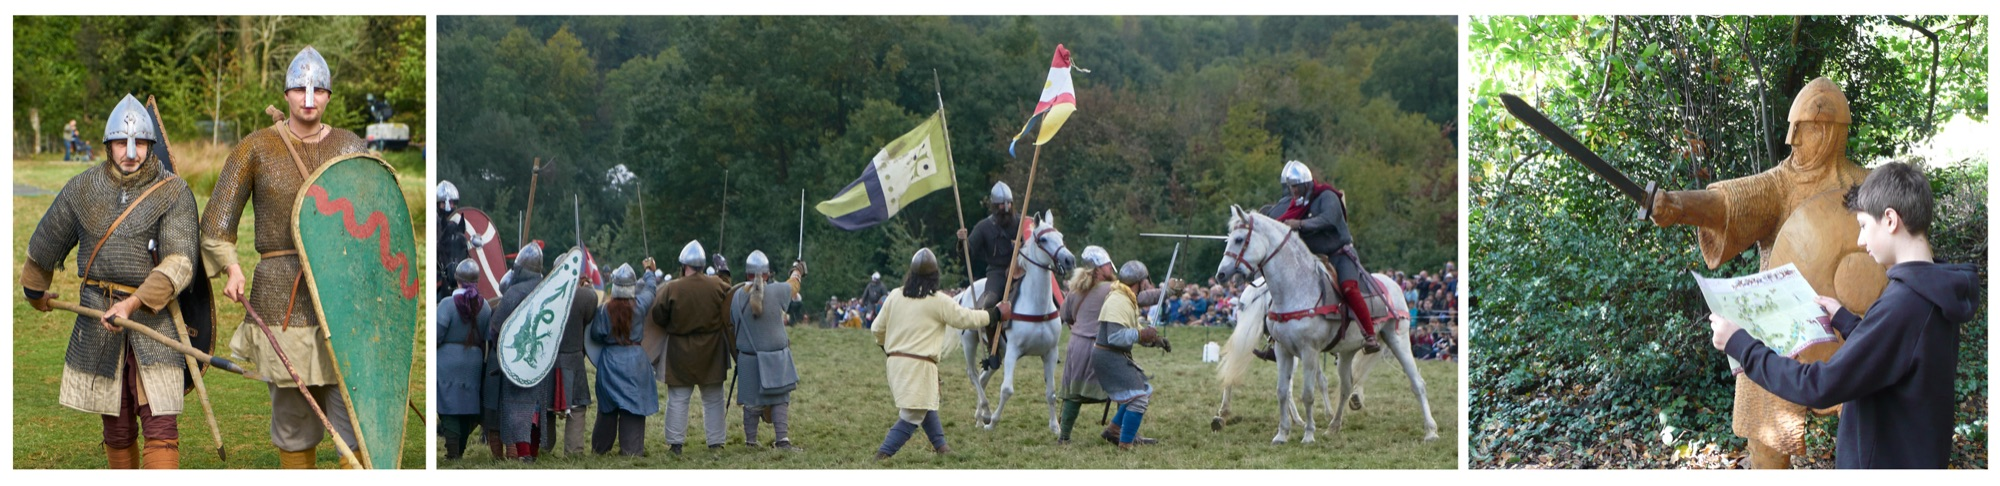 Blackbird Publishing English Heritage Battle Abbey Anniversary Reenaactment Battle of Hastings 1066 footer